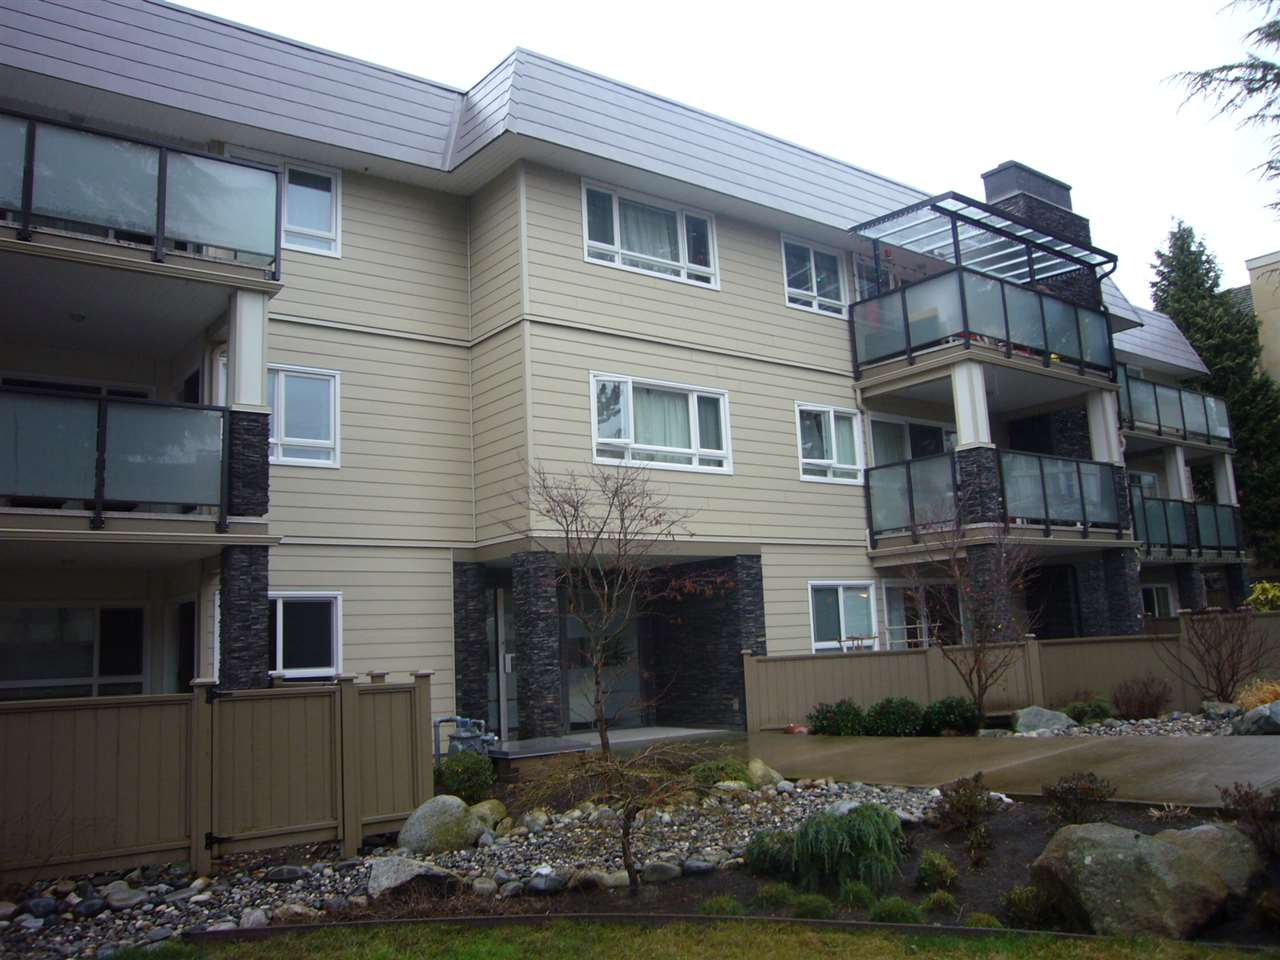 """Fully rainscreened, just 3 years ago. Exterior fully done (roof, siding, windows, decks, doors). Unit is clean but mostly original, awaiting your updating ideas.  Features a wood burning fireplace, oversize covered deck, 2 pets (either 2 cats or 1 cat plus 1 dog /  under 15"""" at shoulder ) are allowed in this 55+ building. A 5x7 locker and 1 parking stall (#1).  Strata fee of $393 includes your heat and hot water. No rentals here, in this no smoking building.... Easy access for showings, and quick possession ok.  Just 2 blocks to the mall."""